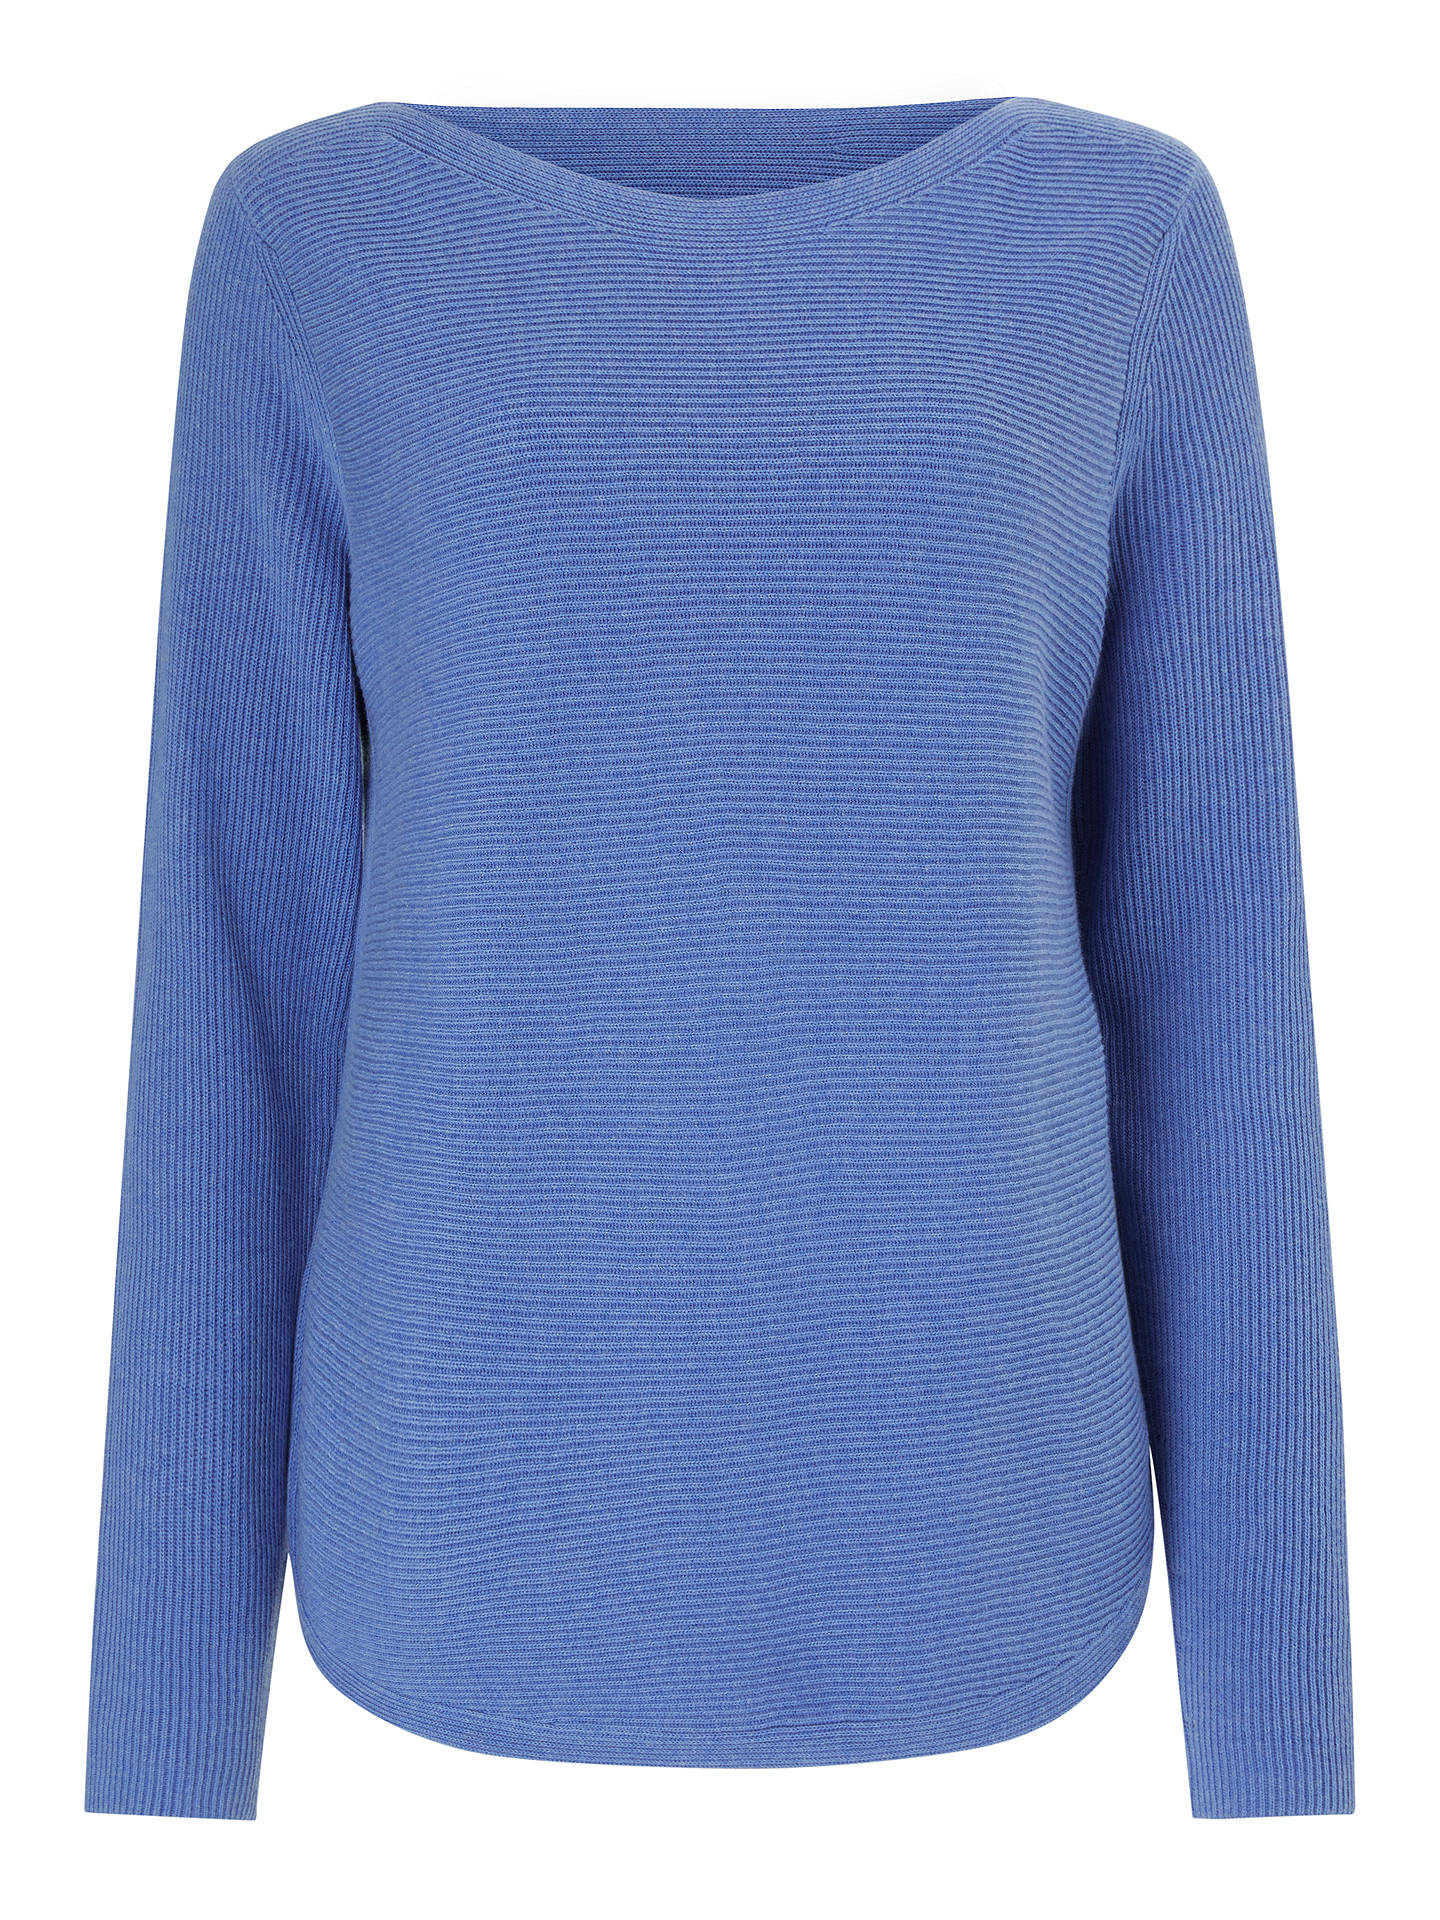 BuyJohn Lewis & Partners Rib Stitch Boat Neck Jumper, Ultramarine Blue, 10 Online at johnlewis.com